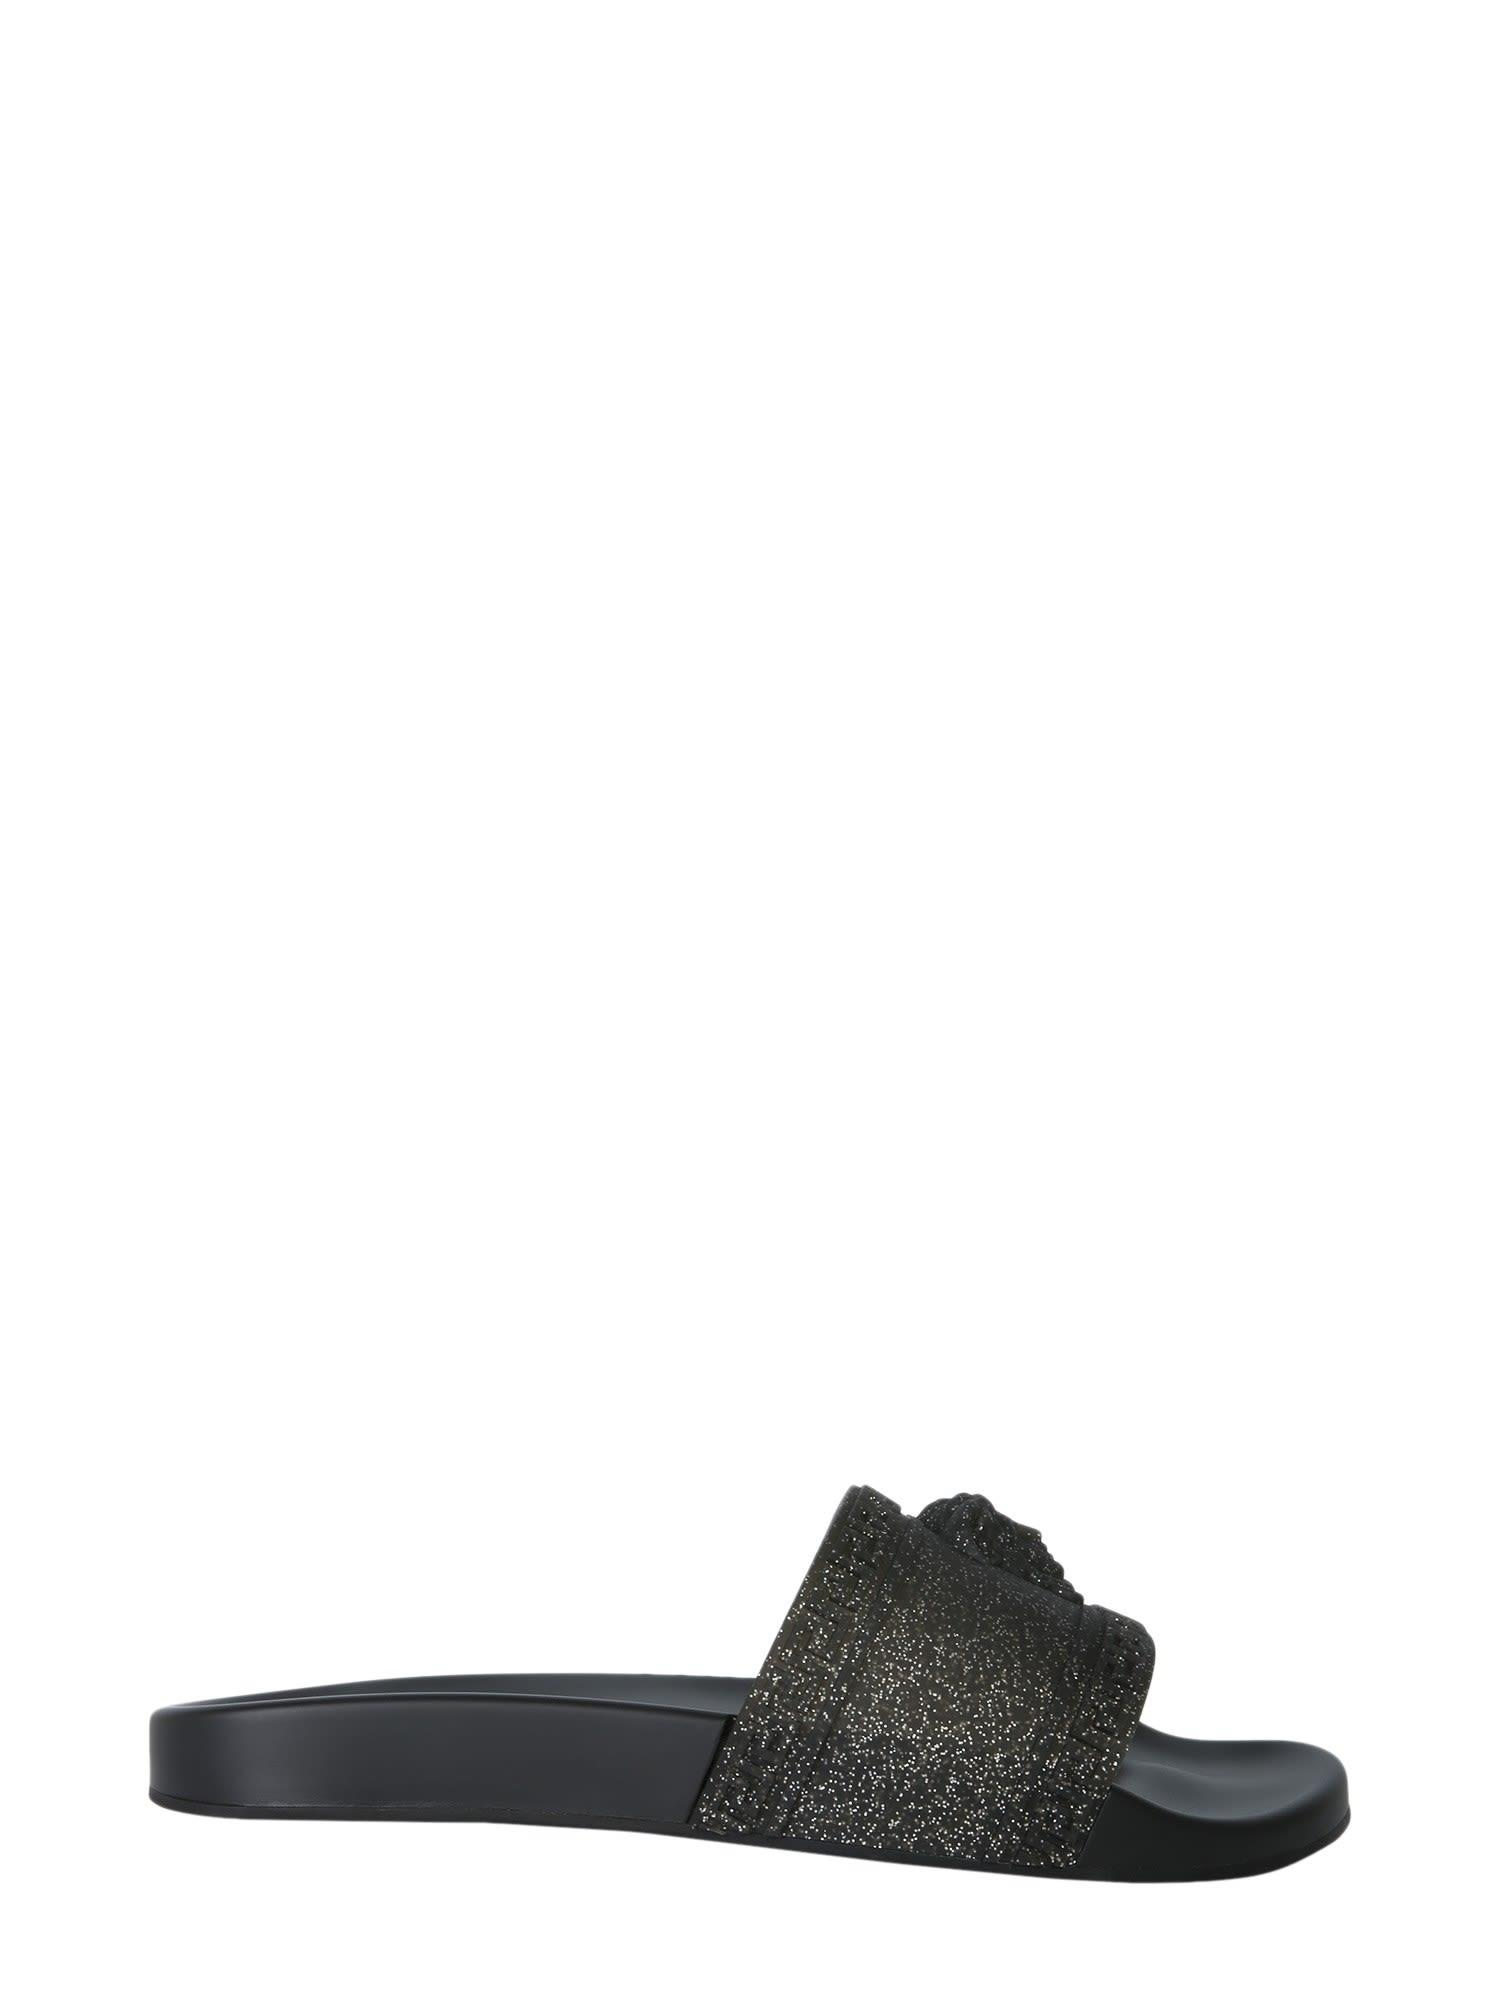 3a6490673af1b Versace Men S Glitter Shower Slide Sandals